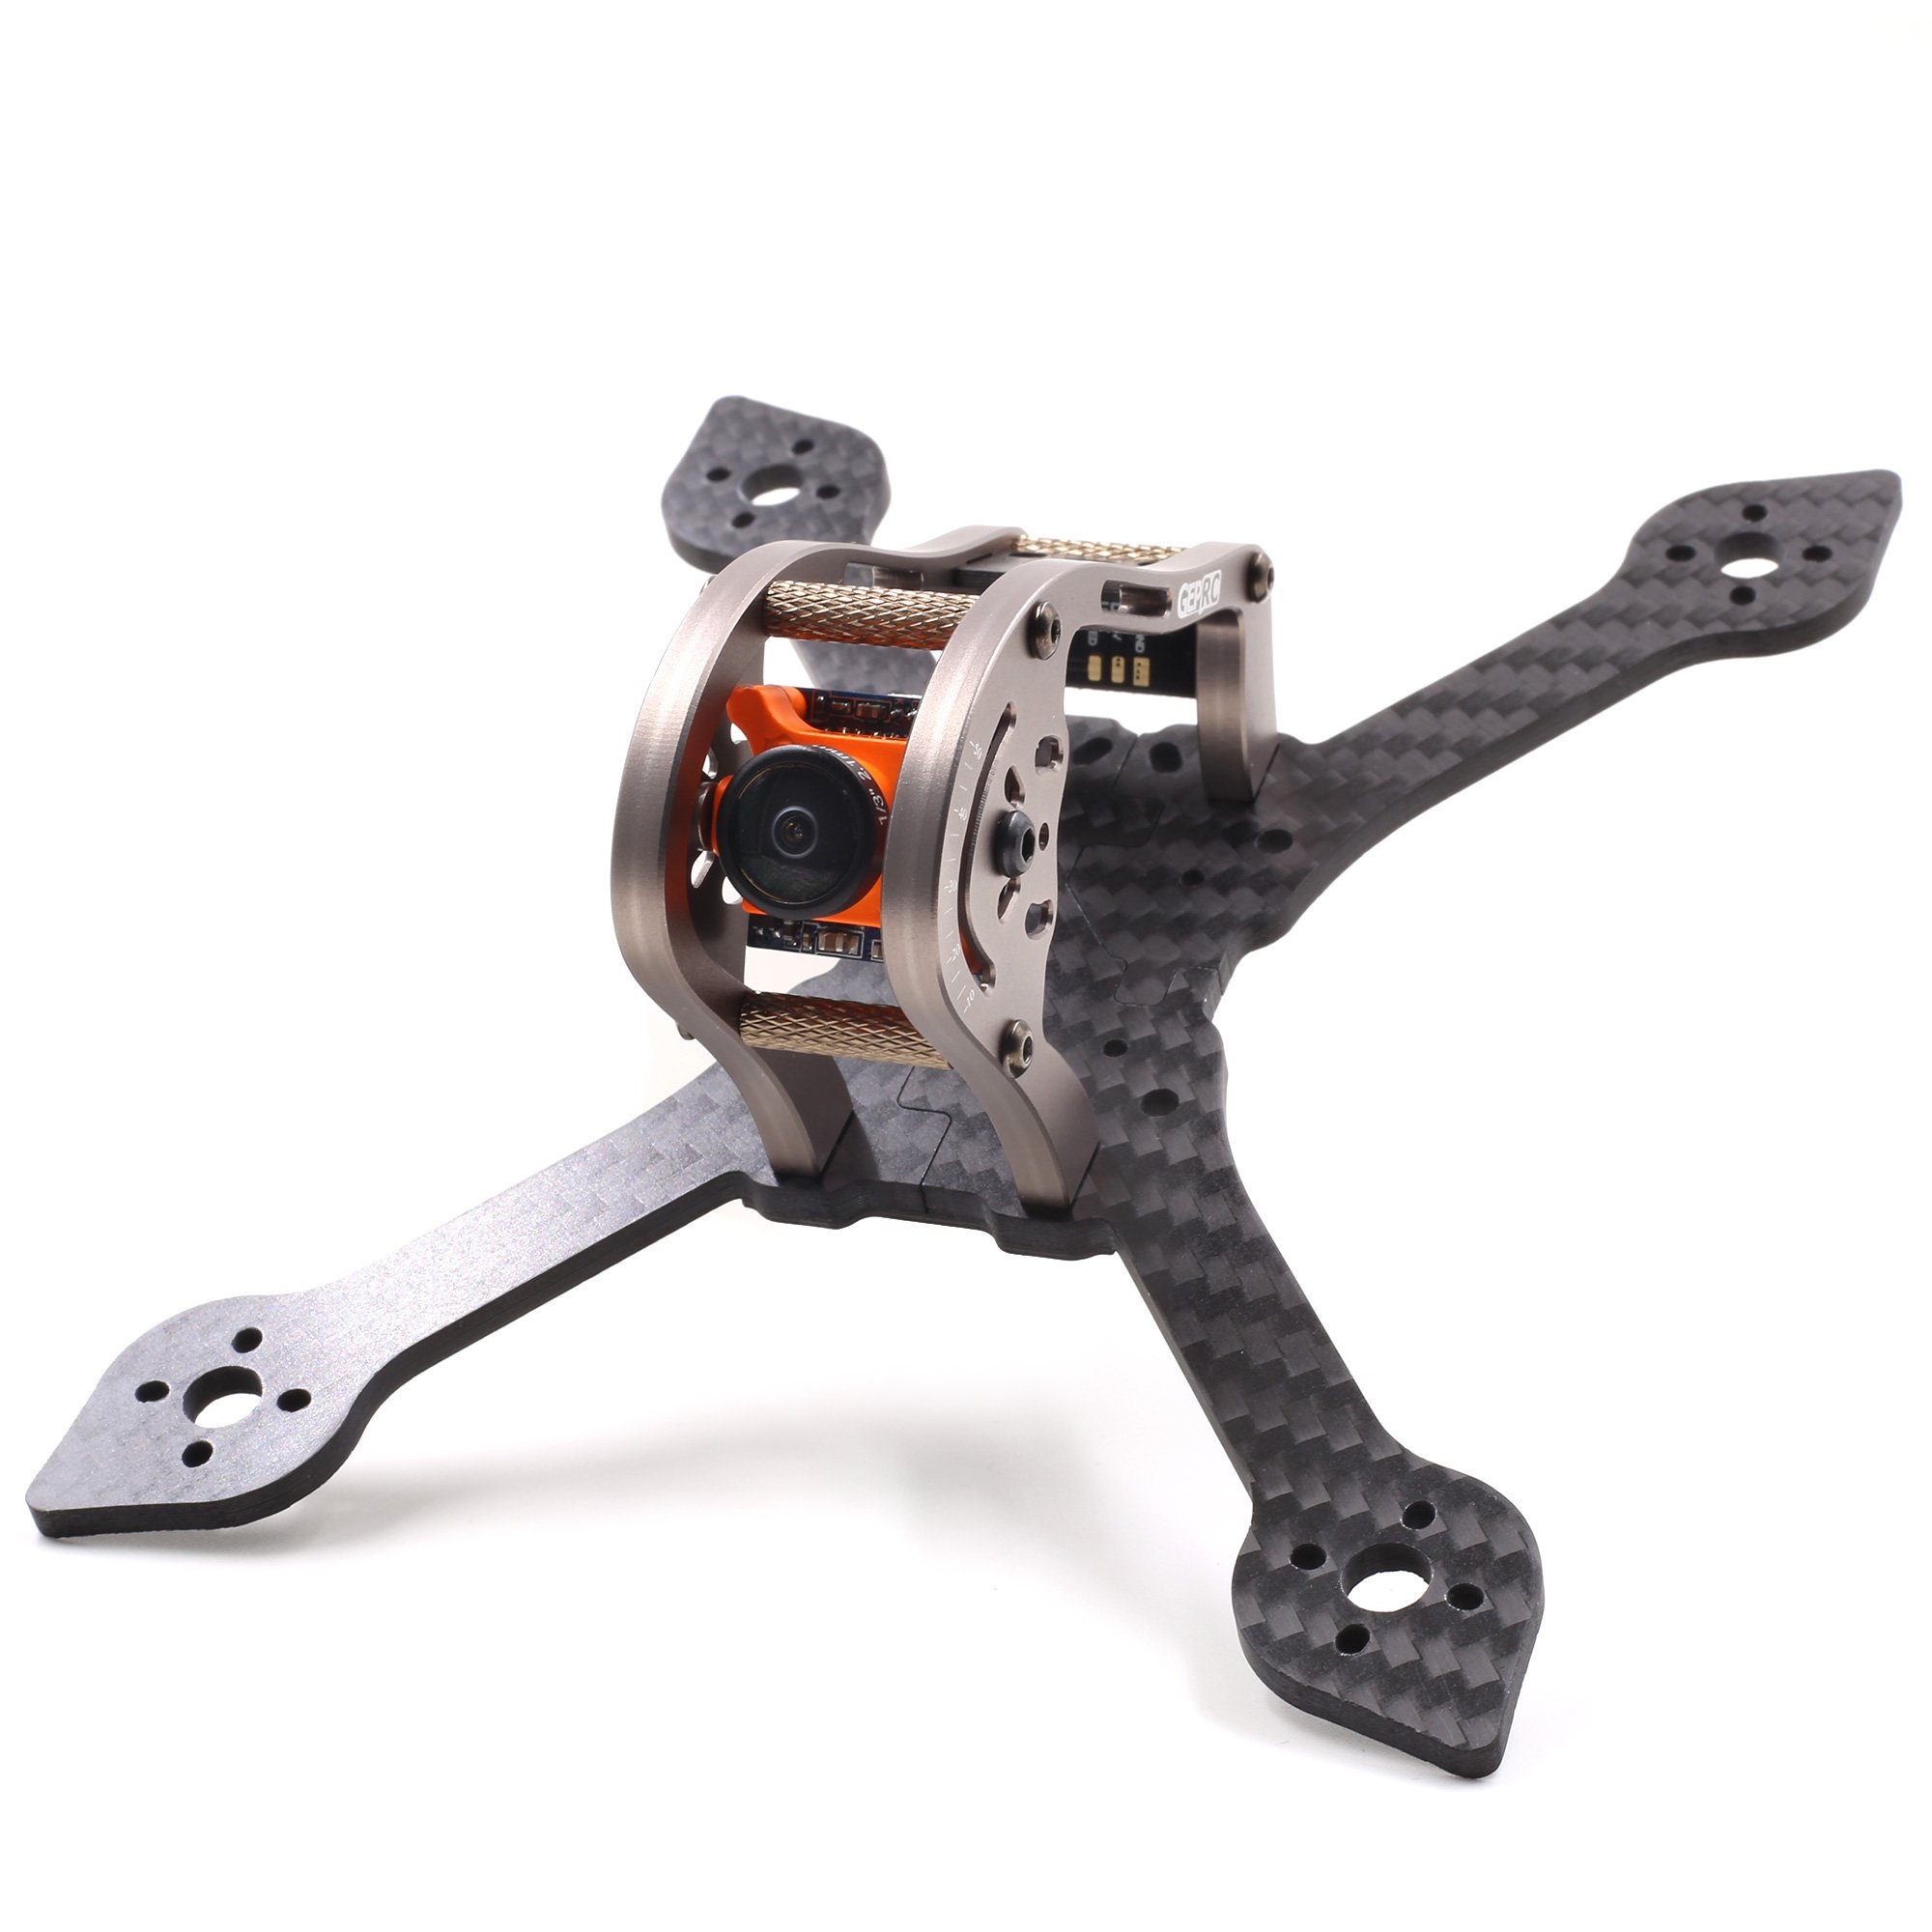 Crazepony GEPRC Sparrow 139MM FPV Frame with RGB LED 3K Carbon Fiber Frame 3mm Thickness Support RUNCAM Swift Mini and Micro Swift lens for Racing Quadcopter Drone (GEP-MX3) (145MM-Silvery) by Crazepony